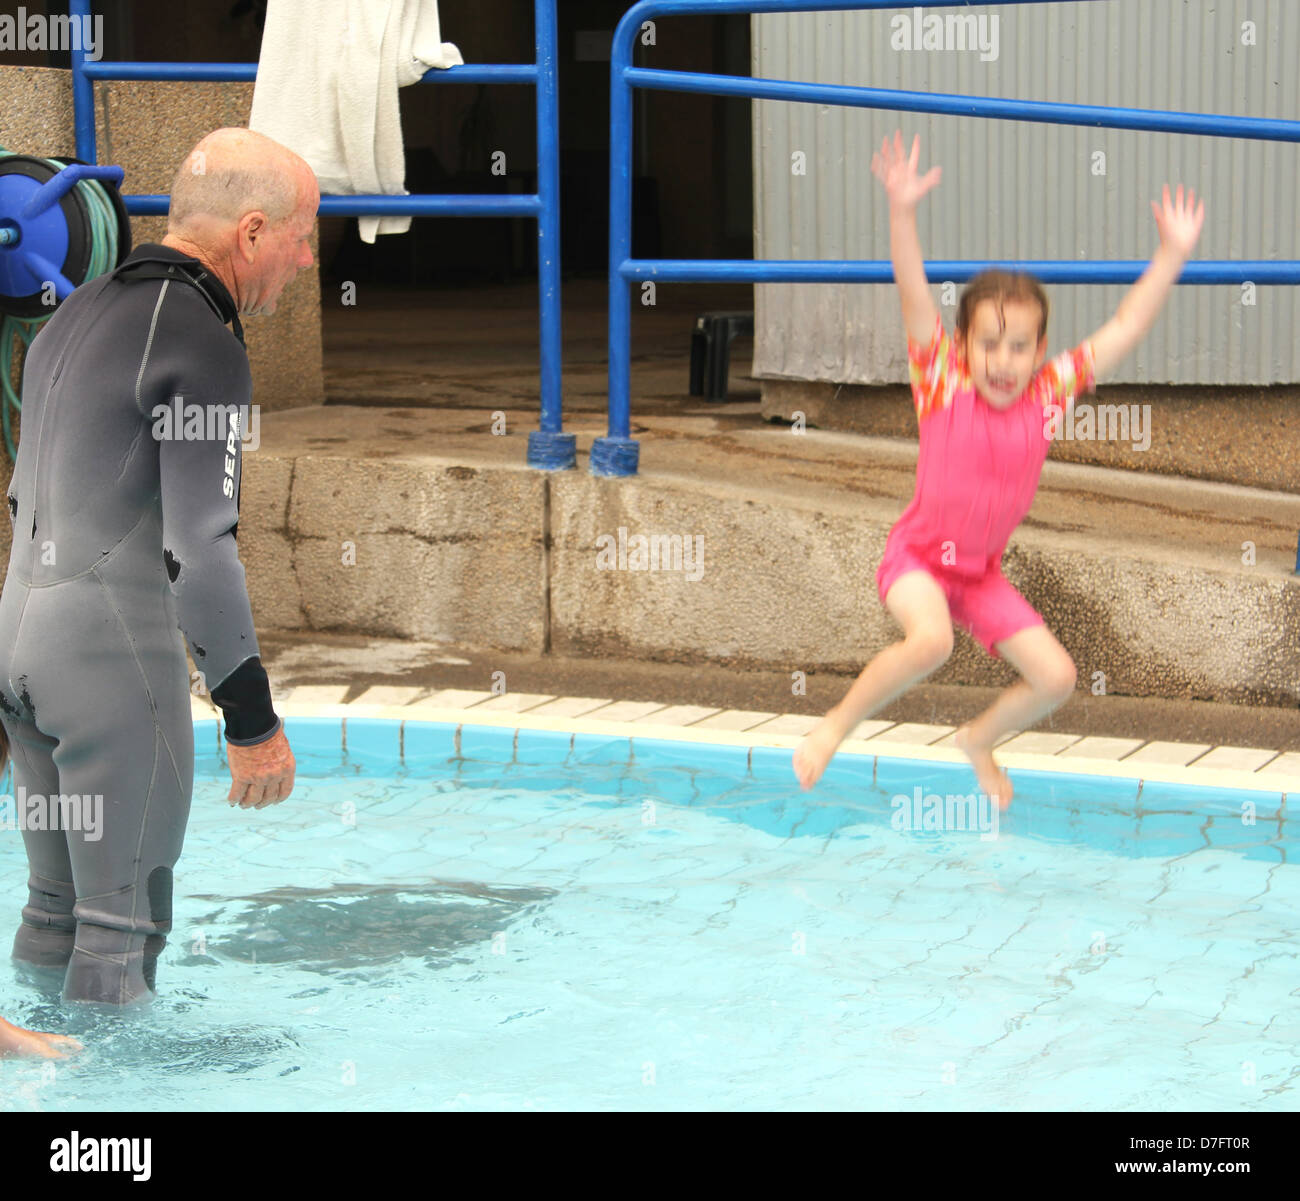 Child jumps into water during Hydrotherapy (hydropathy) treatment Stock Photo